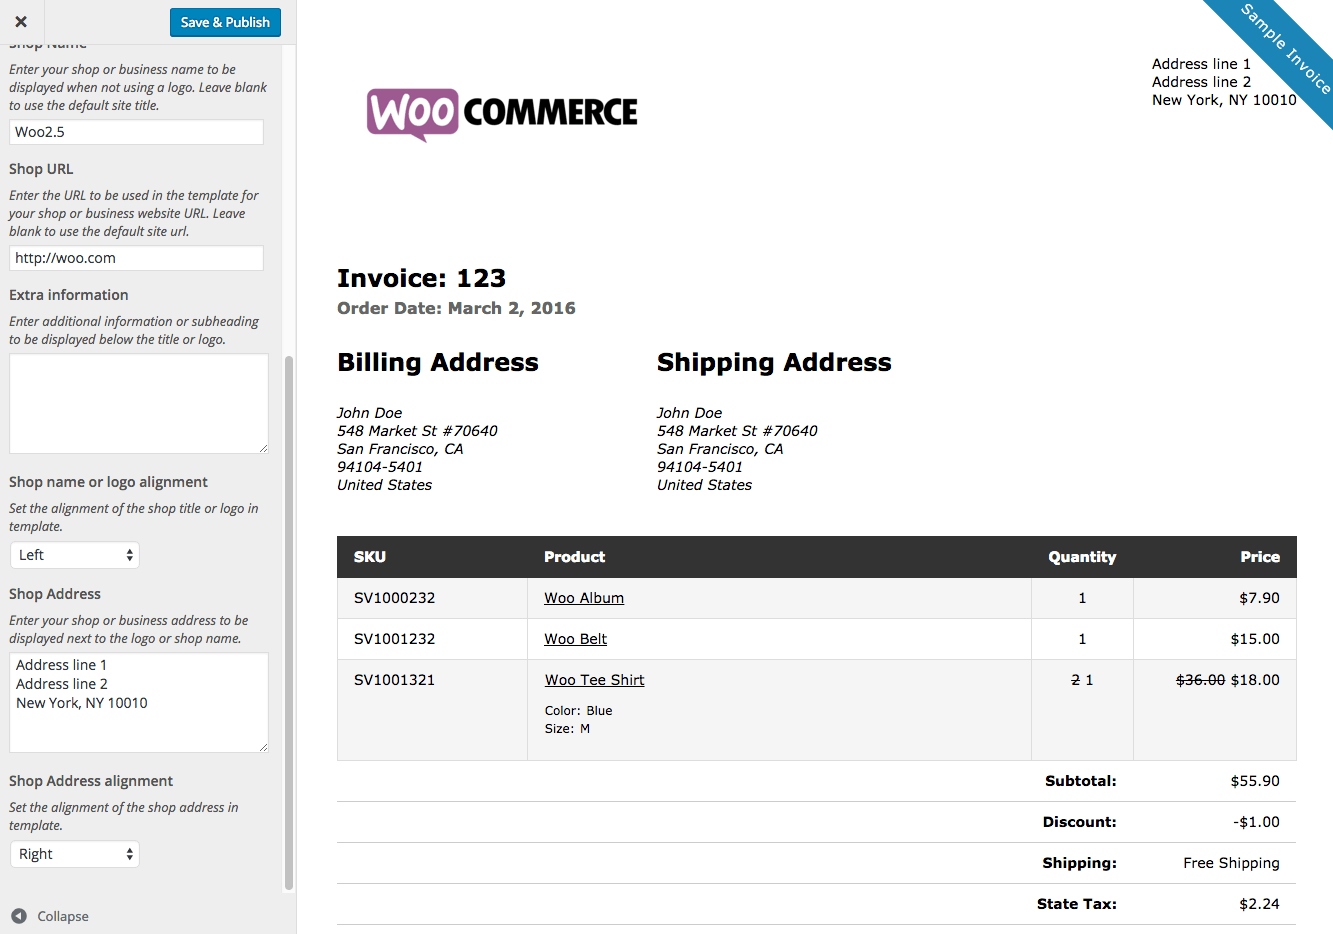 Helpingtohealus  Scenic Woocommerce Print Invoices Amp Packing Lists  Woocommerce Docs With Excellent Woocommerce Print Invoices  Packing Lists Customizer With Cute School Fees Receipt Also Numbered Receipt Books In Addition I Confirm Receipt Of Your Email And Cash Receipt Voucher As Well As Receipt Format For Payment Received Additionally American Depositary Receipts Example From Docswoocommercecom With Helpingtohealus  Excellent Woocommerce Print Invoices Amp Packing Lists  Woocommerce Docs With Cute Woocommerce Print Invoices  Packing Lists Customizer And Scenic School Fees Receipt Also Numbered Receipt Books In Addition I Confirm Receipt Of Your Email From Docswoocommercecom